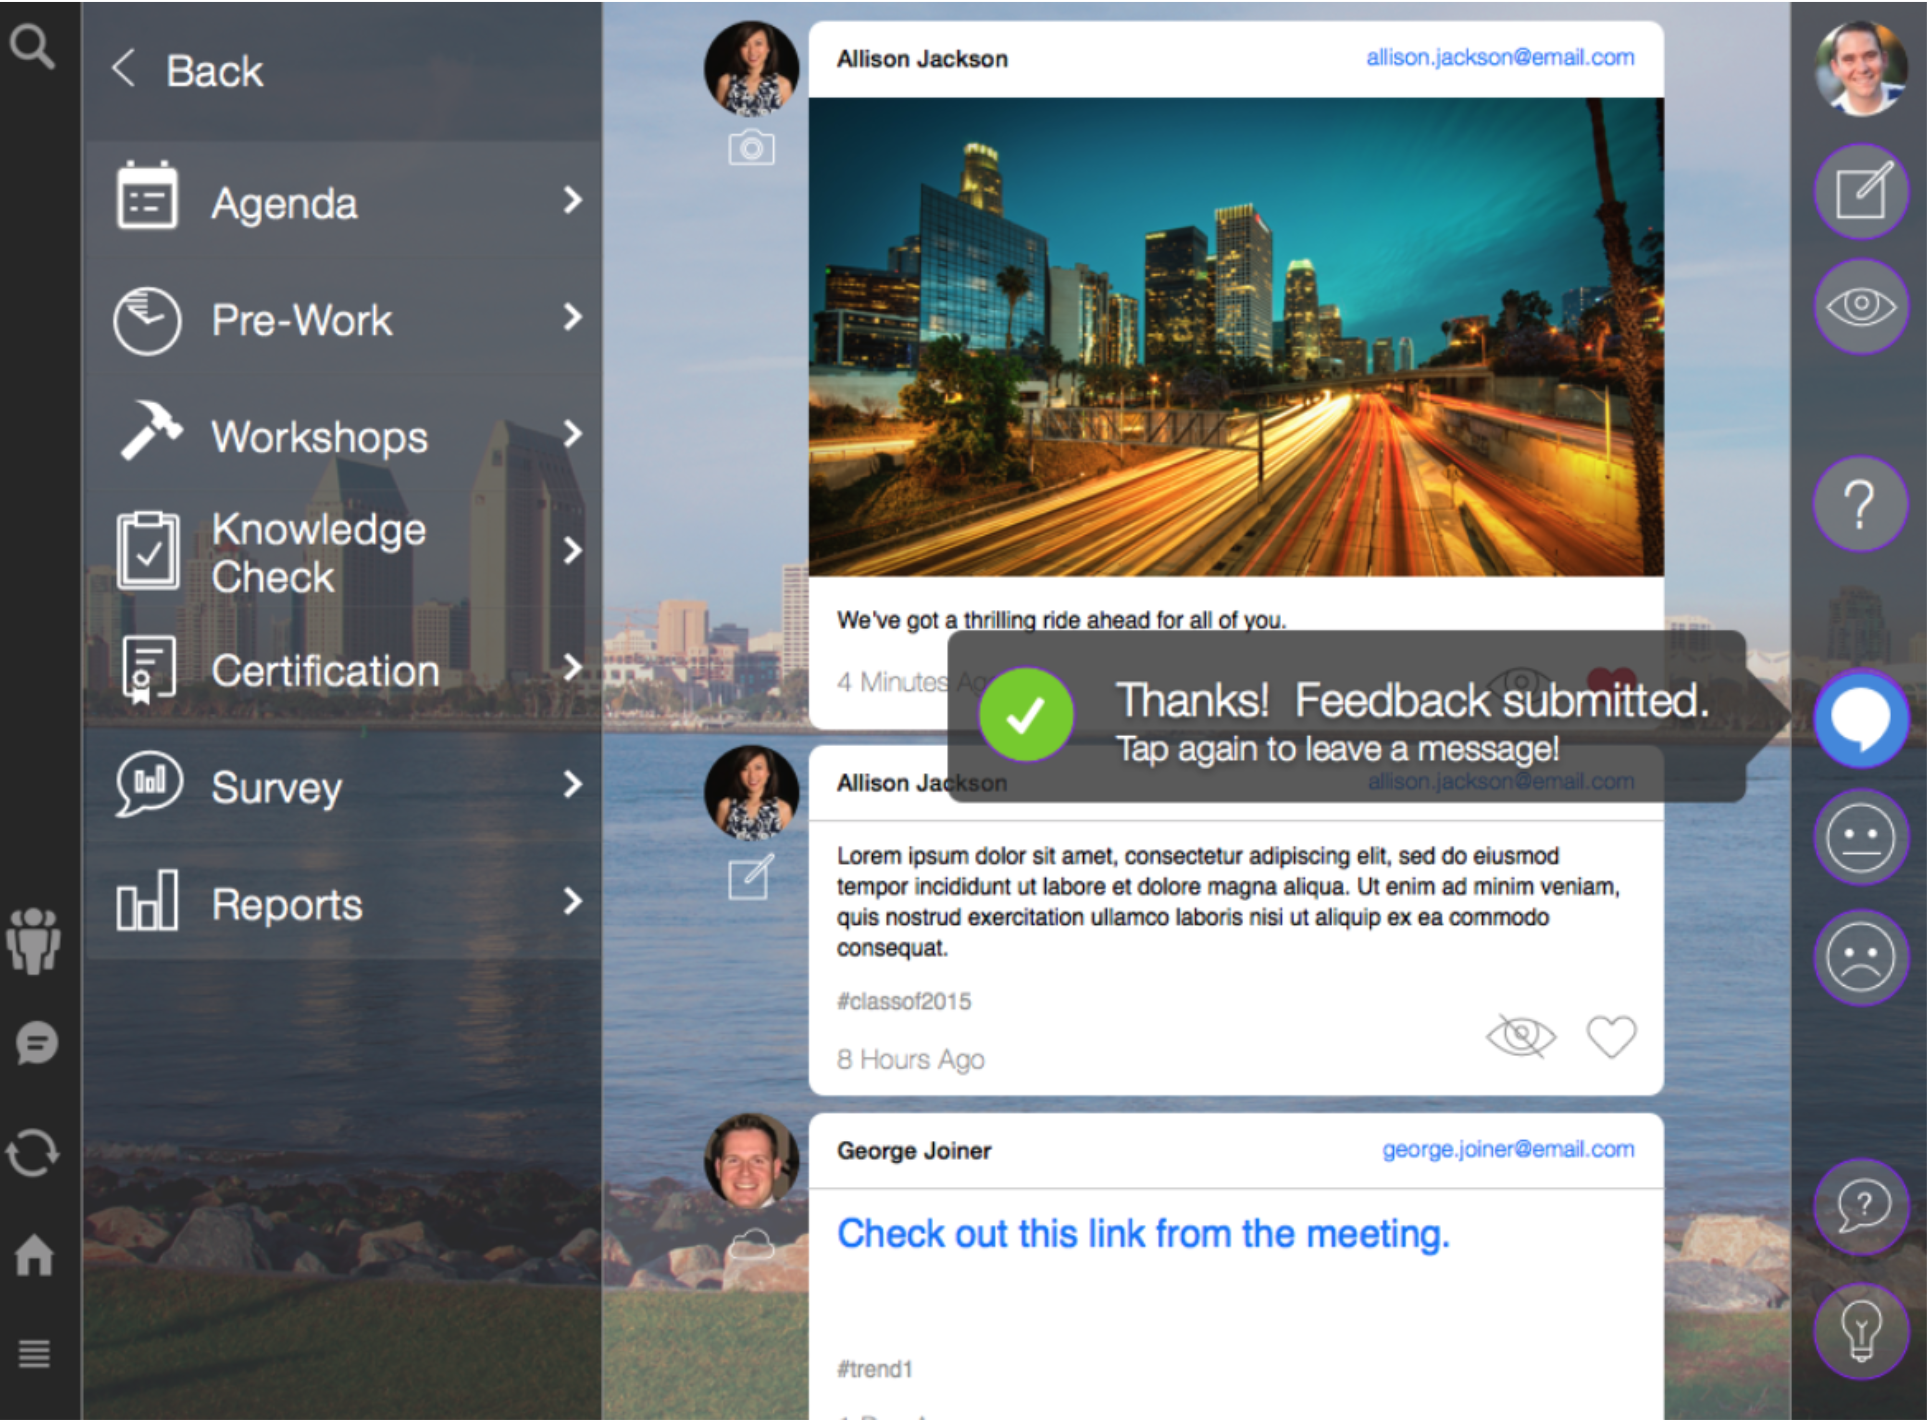 Collaboration - 4th Down's social experience allows your attendees to share, message and interact virtually.